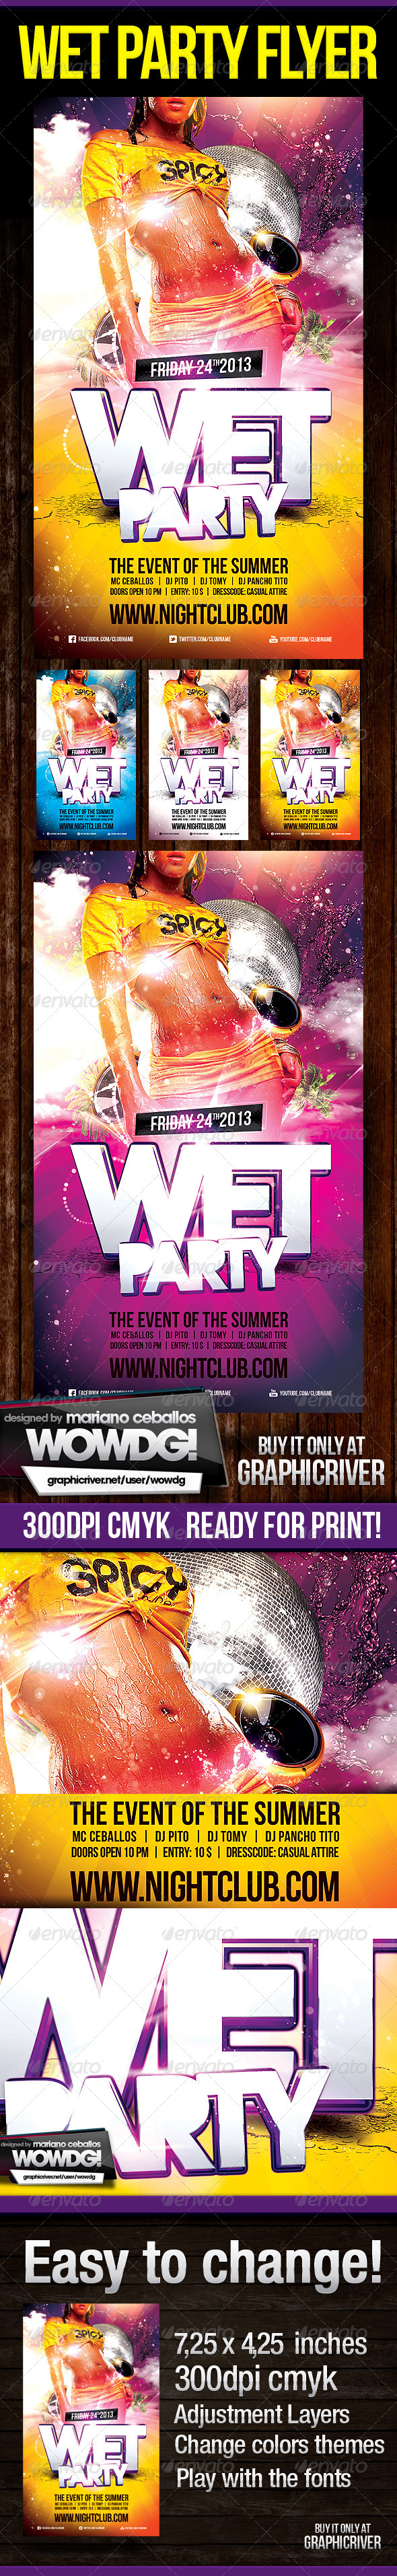 Wet Party Flyer - Clubs & Parties Events